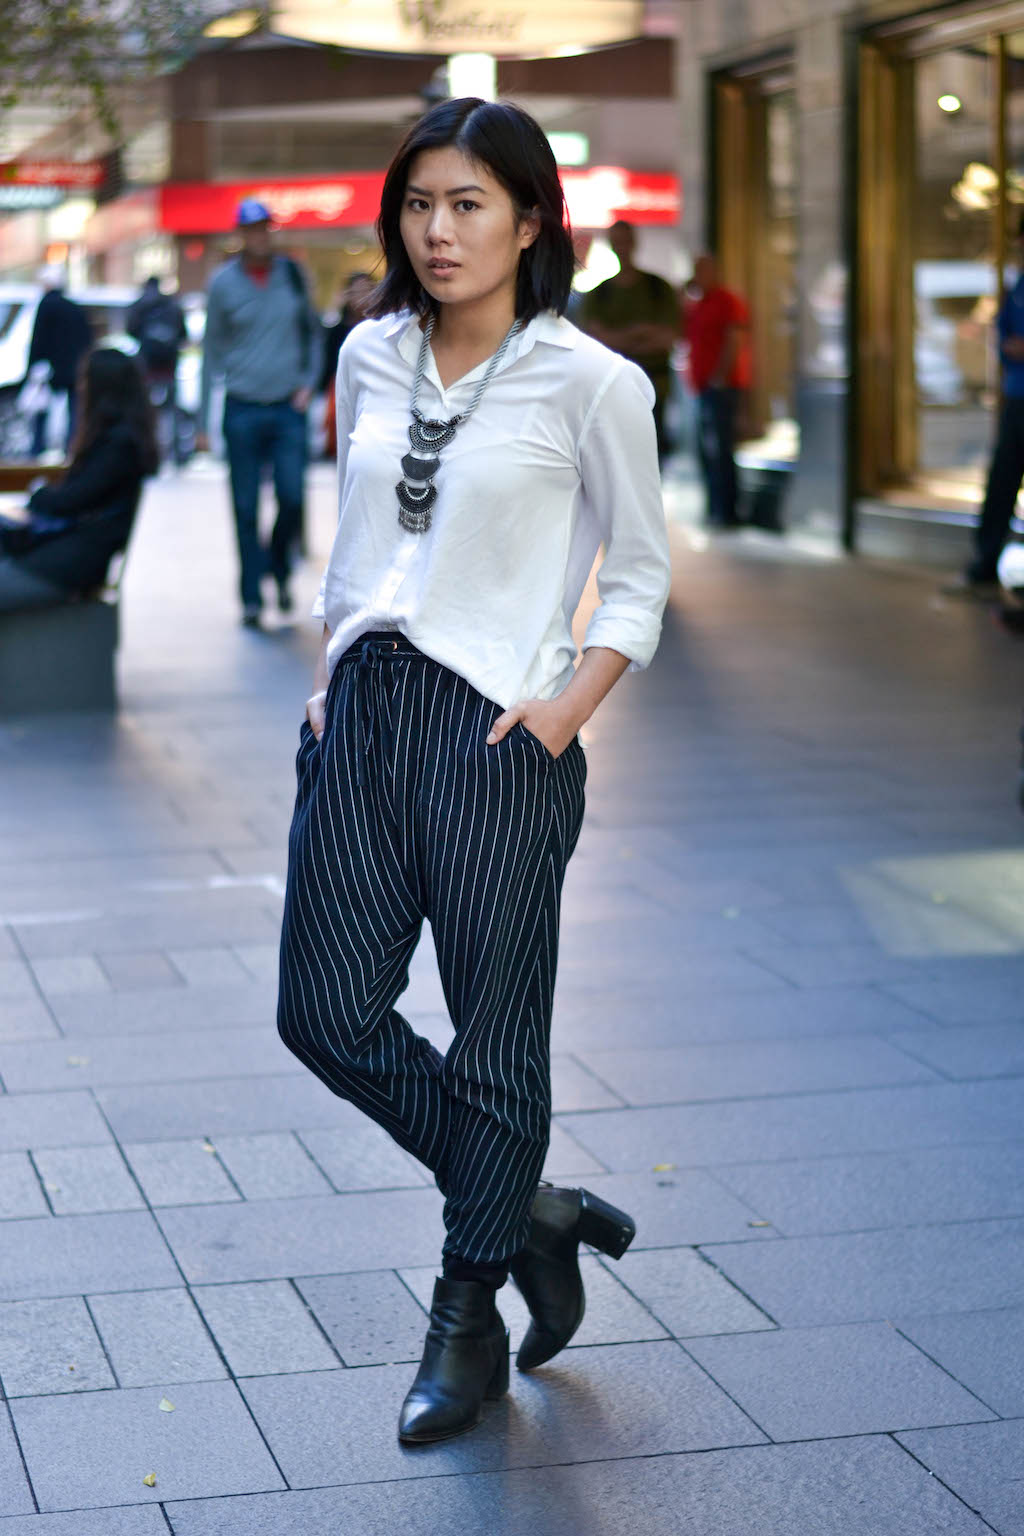 """NSW: Lisa Van, communications student. Her style: """"Moody, androgynous, and lots of pants!"""" Photo: Alice Scriberras"""